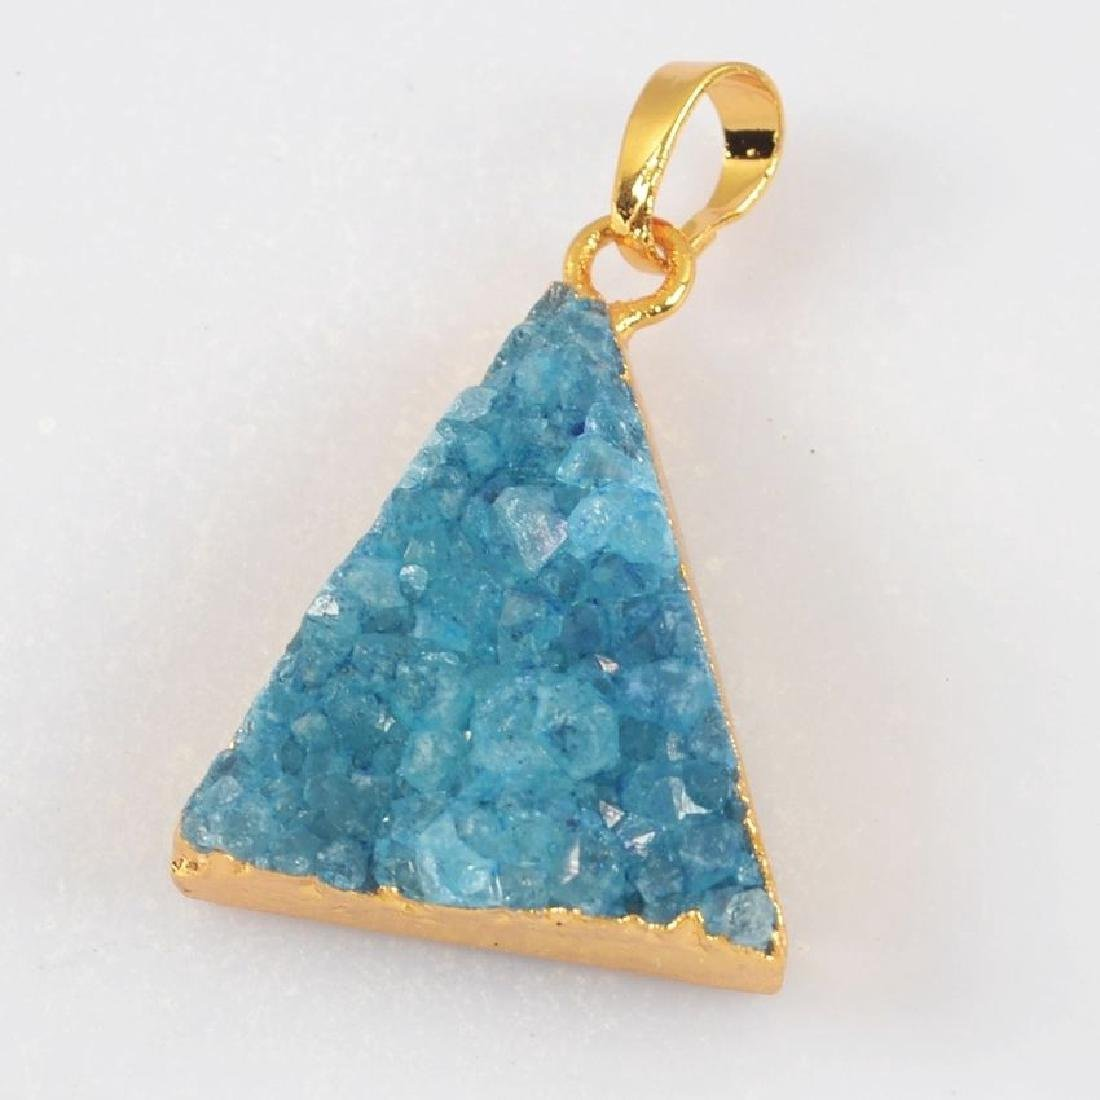 Blue Agate Druzy Geode Pendant Gold Plated. Size:(Appro